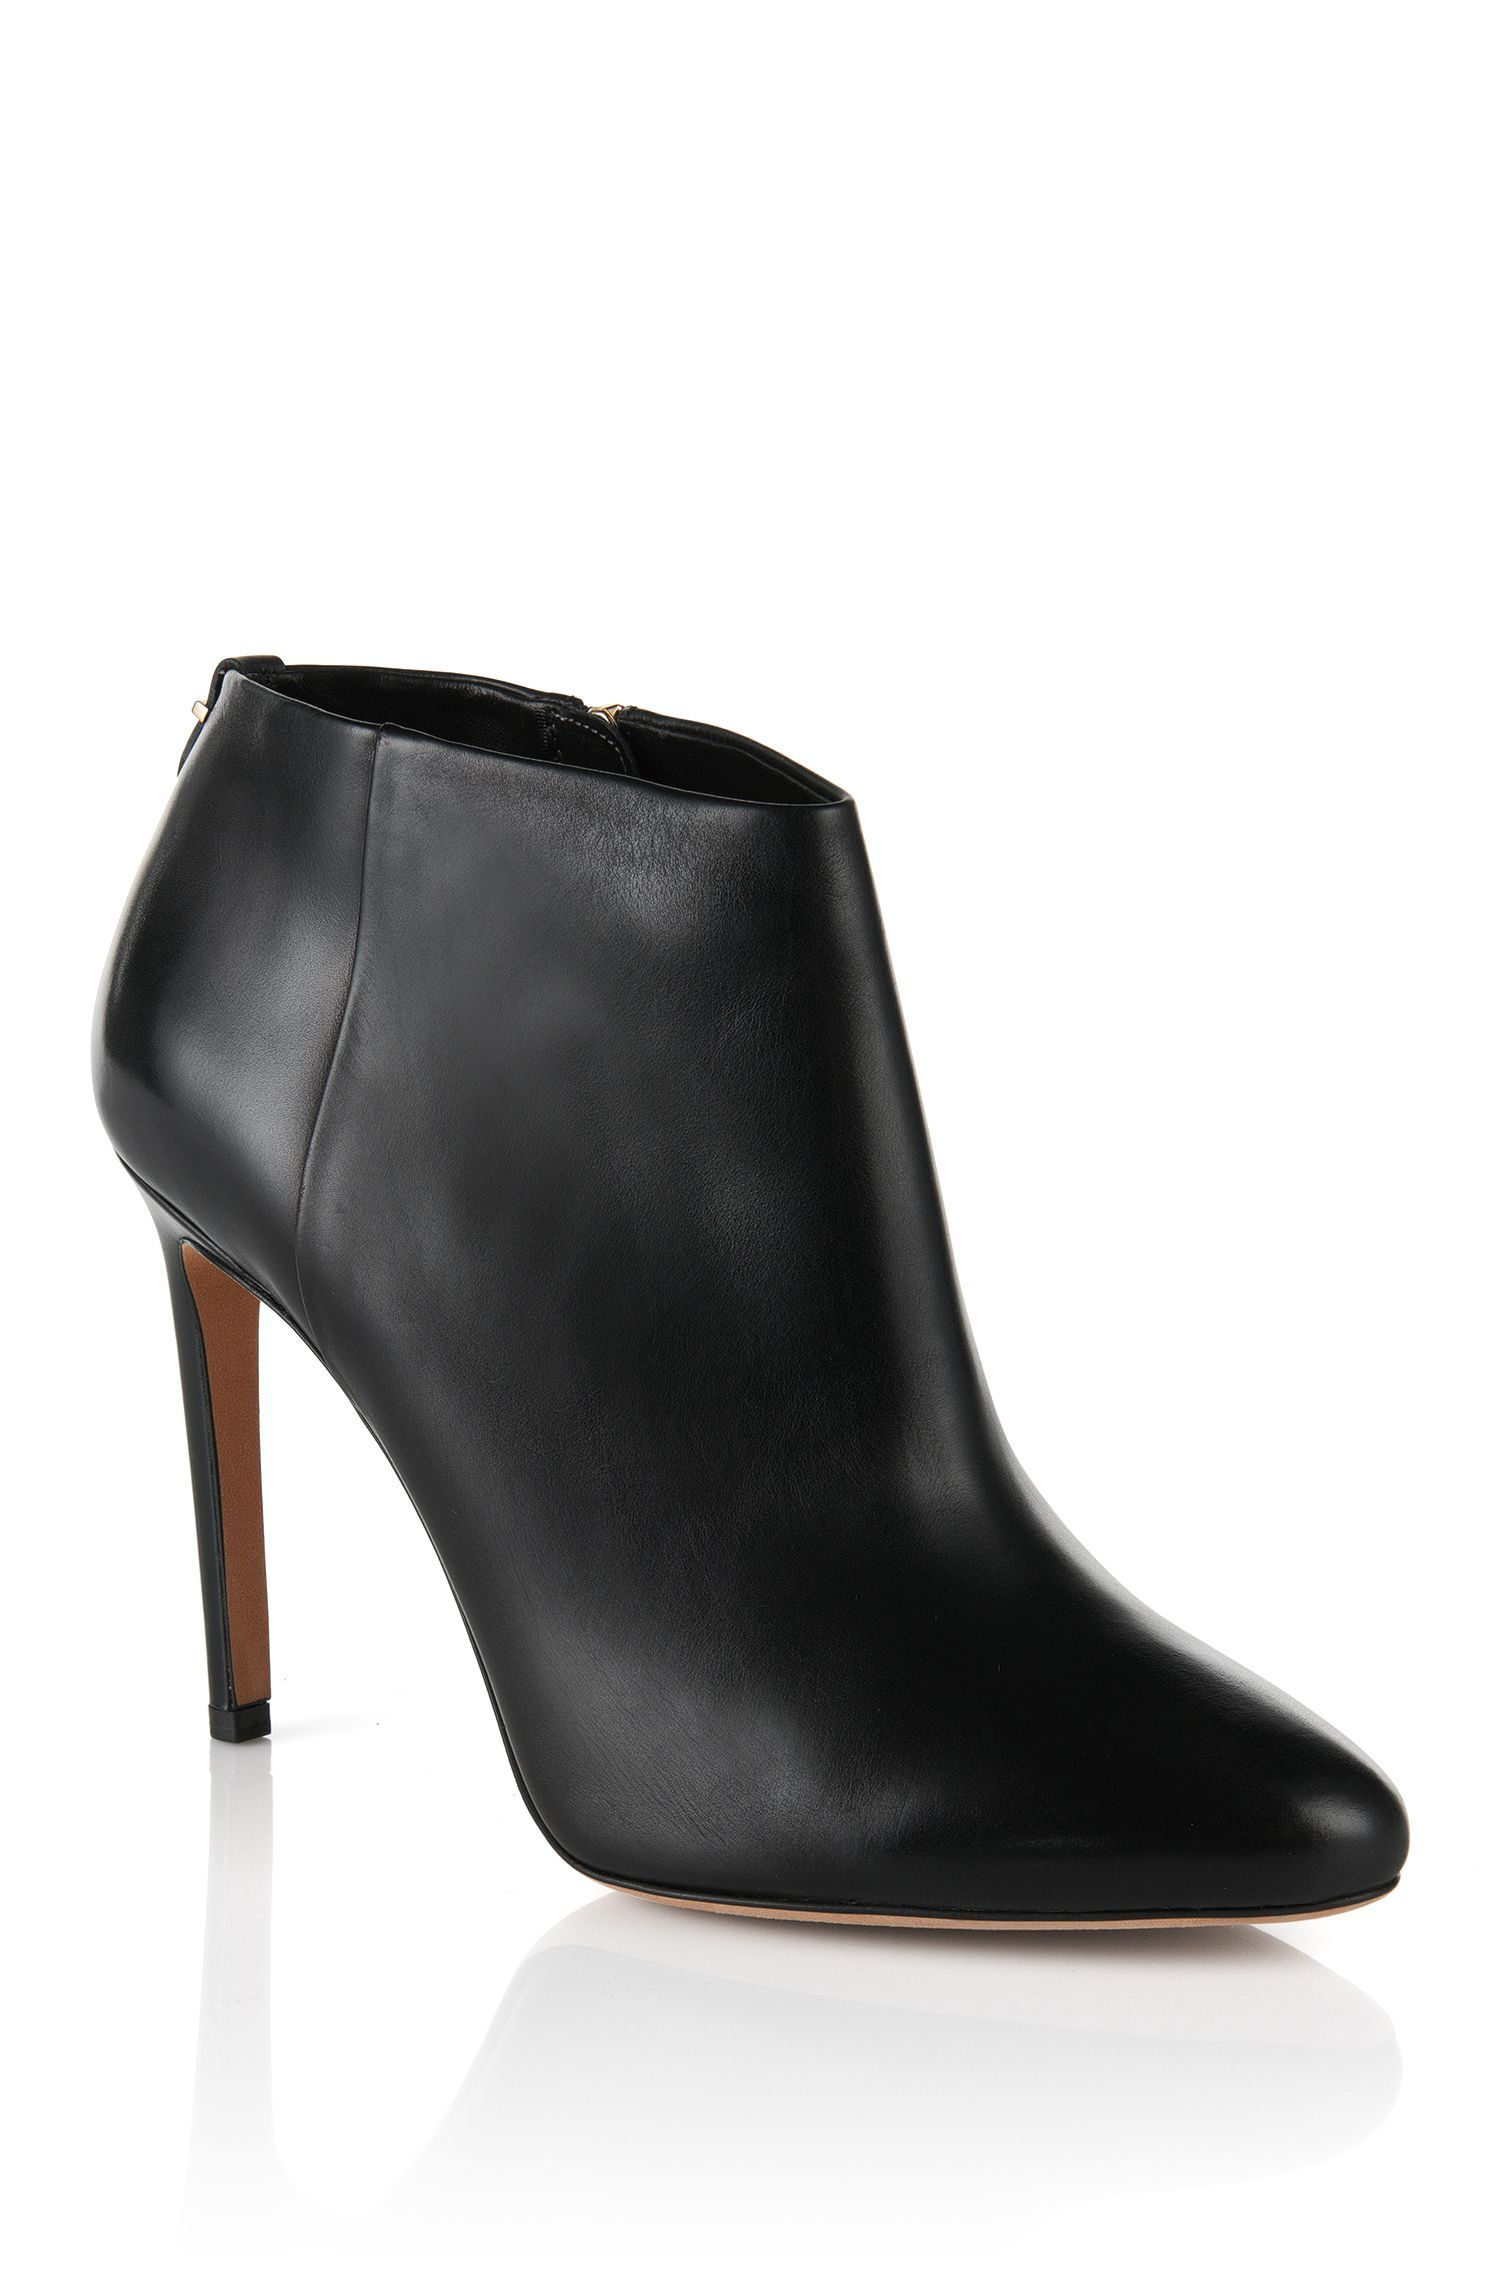 d1d7b52210250a BOSS Hugo Boss  Staple Bootie 100  black leather ankle boots. Debuted Nov  2015